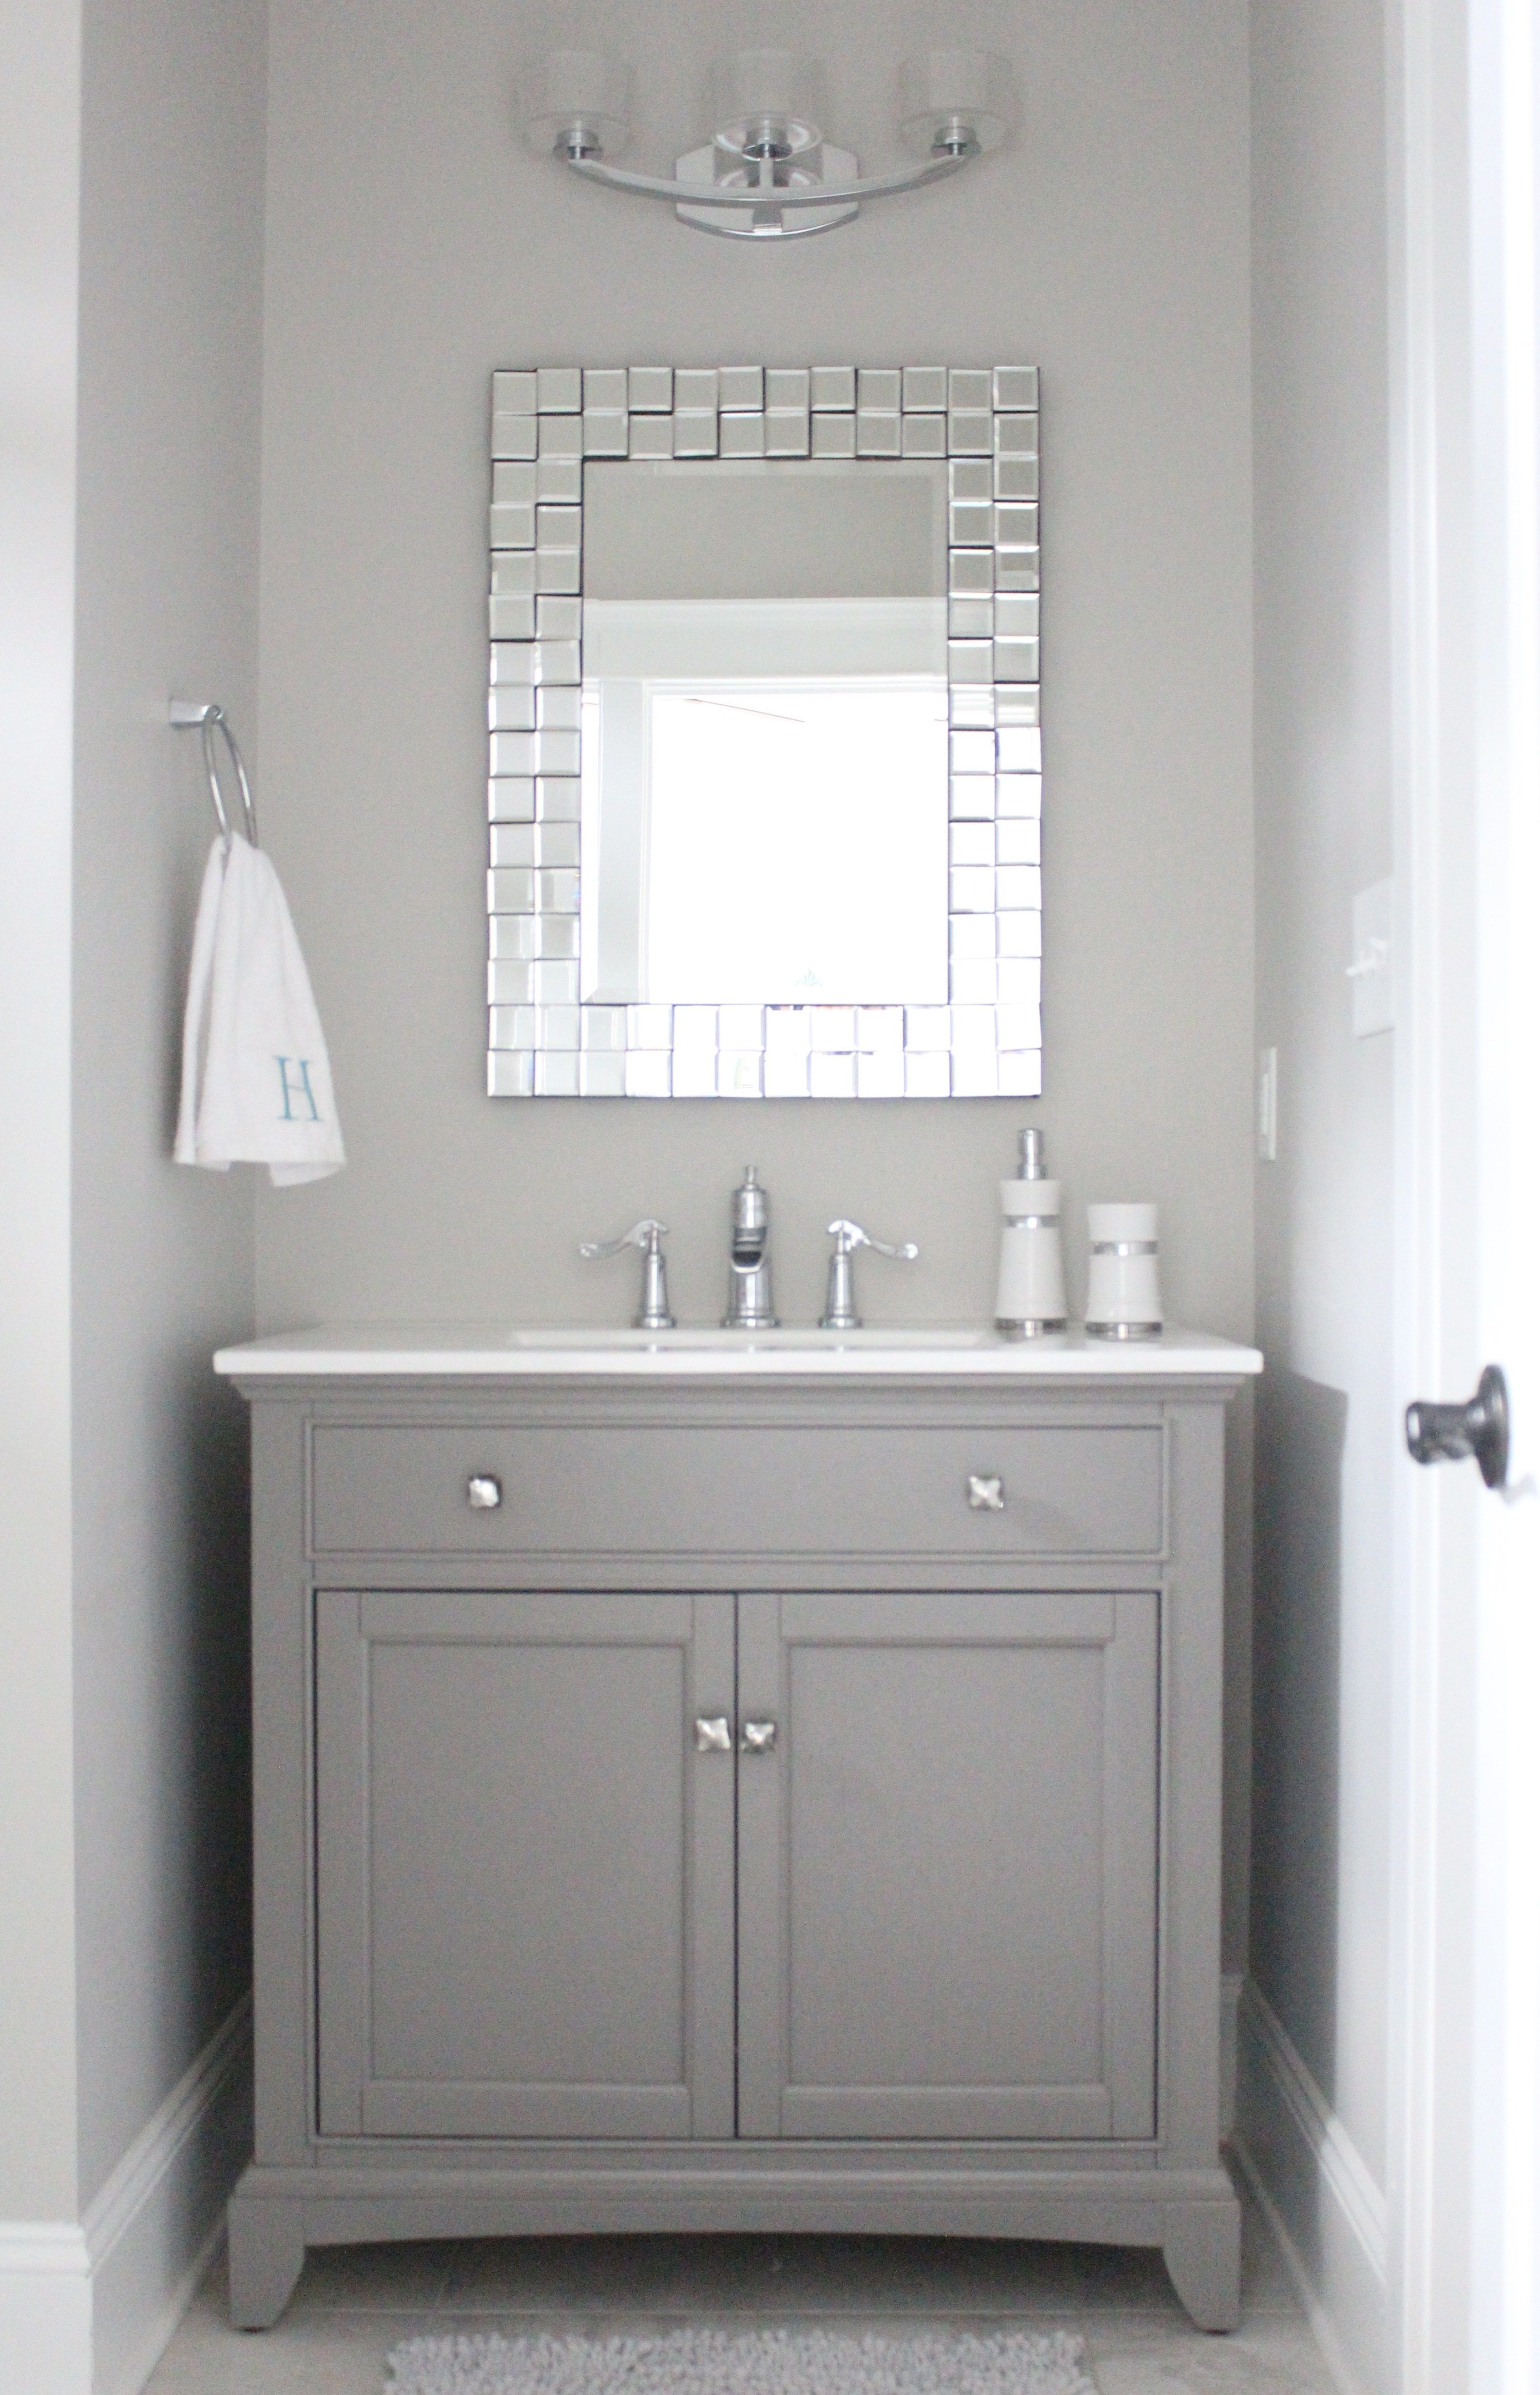 Creat amazing bathrooms with luxury mirros discover some maison